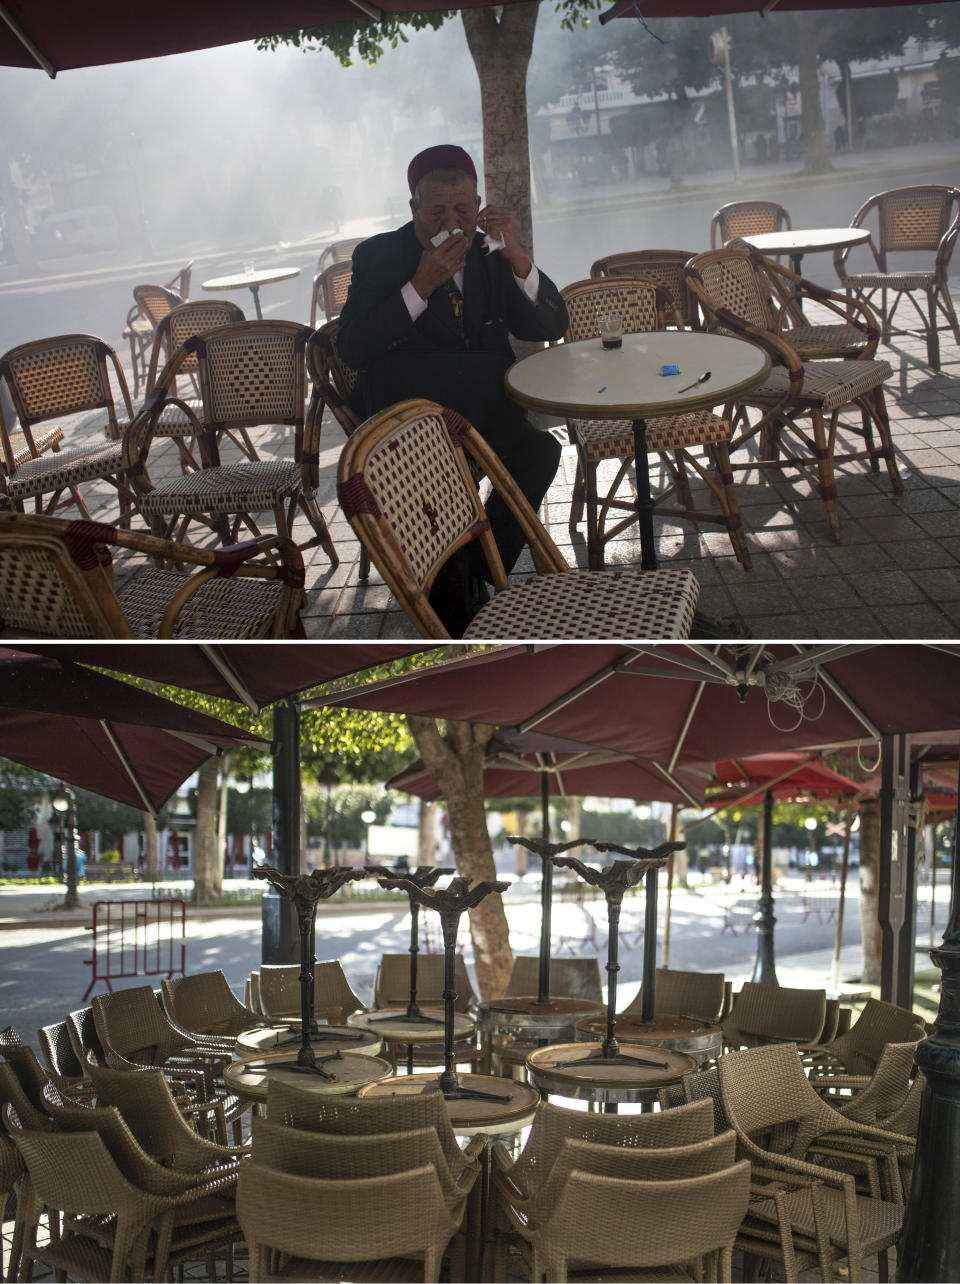 A combo image showing a man trying to breathe through a cloth as teargas during a demonstration against former Tunisian President Zine El Abidine Ben Ali in the center of Tunis, Monday, Jan. 17. 2011 top, and empty chairs and tables packed outside a close street cafe in Tunis' landmark Avenue Habib Bourgiba, where massive protests took place in 2011, on the tenth anniversary of the uprising, during to a national lockdown after a surge in Covid-19 cases, in Tunis, Thursday, Jan. 14, 2021. Tunisia is commemorating the 10th anniversary since the flight into exile of its iron-fisted leader, Zine El Abidine Ben Ali, pushed from power in a popular revolt that foreshadowed the so-called Arab Spring. But there will be no festive celebrations Thursday marking the revolution in this North African nation, ordered into lockdown to contain the coronavirus. (AP Photo/Thibault Camus, Mosa'ab Elshamy)